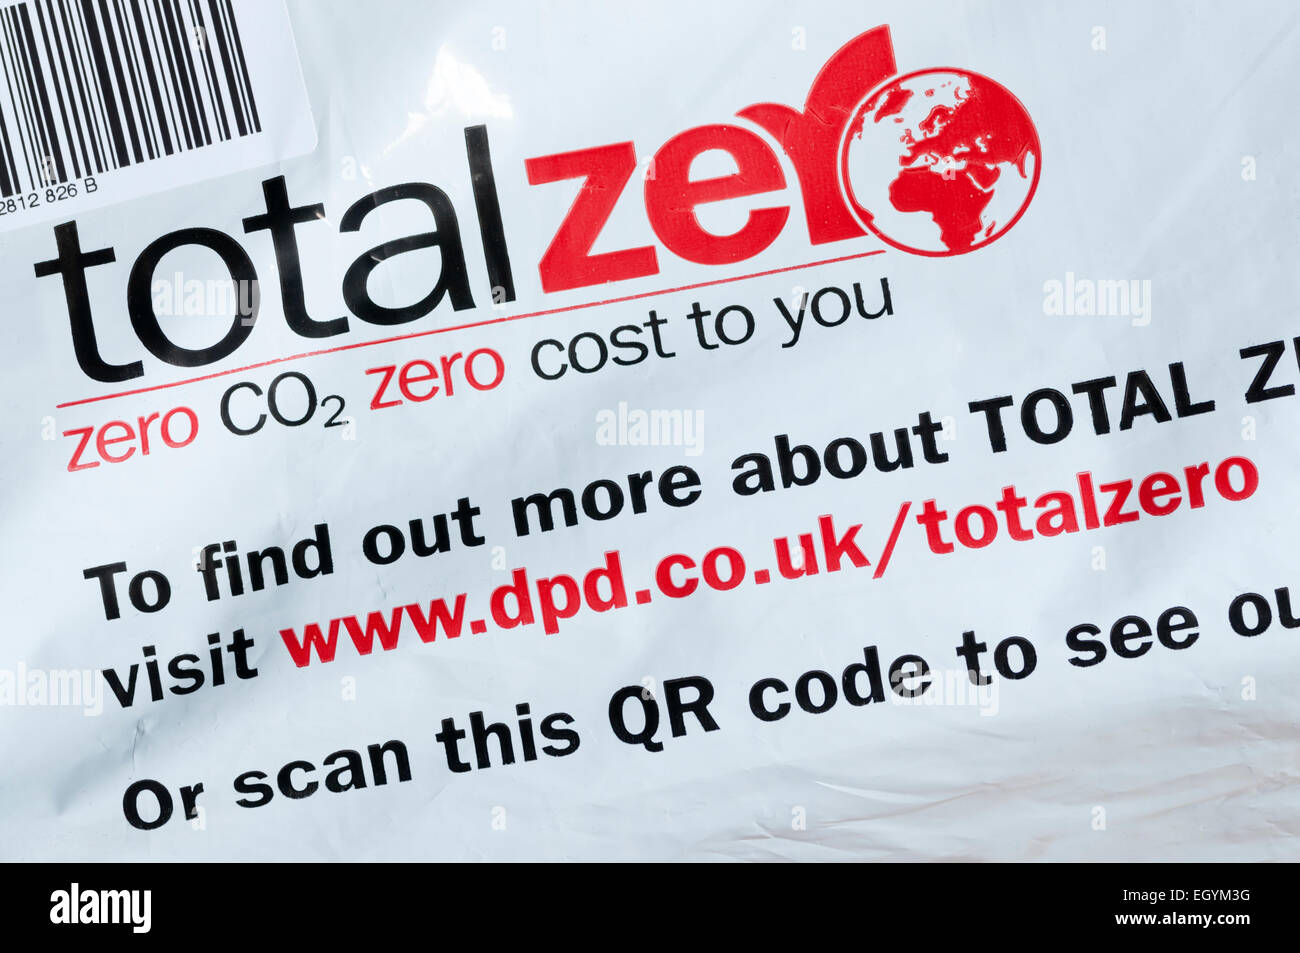 Total Zero logo on parcel delivery guaranteeing zero CO2 cost, to help companies reduce their carbon footprint. - Stock Image